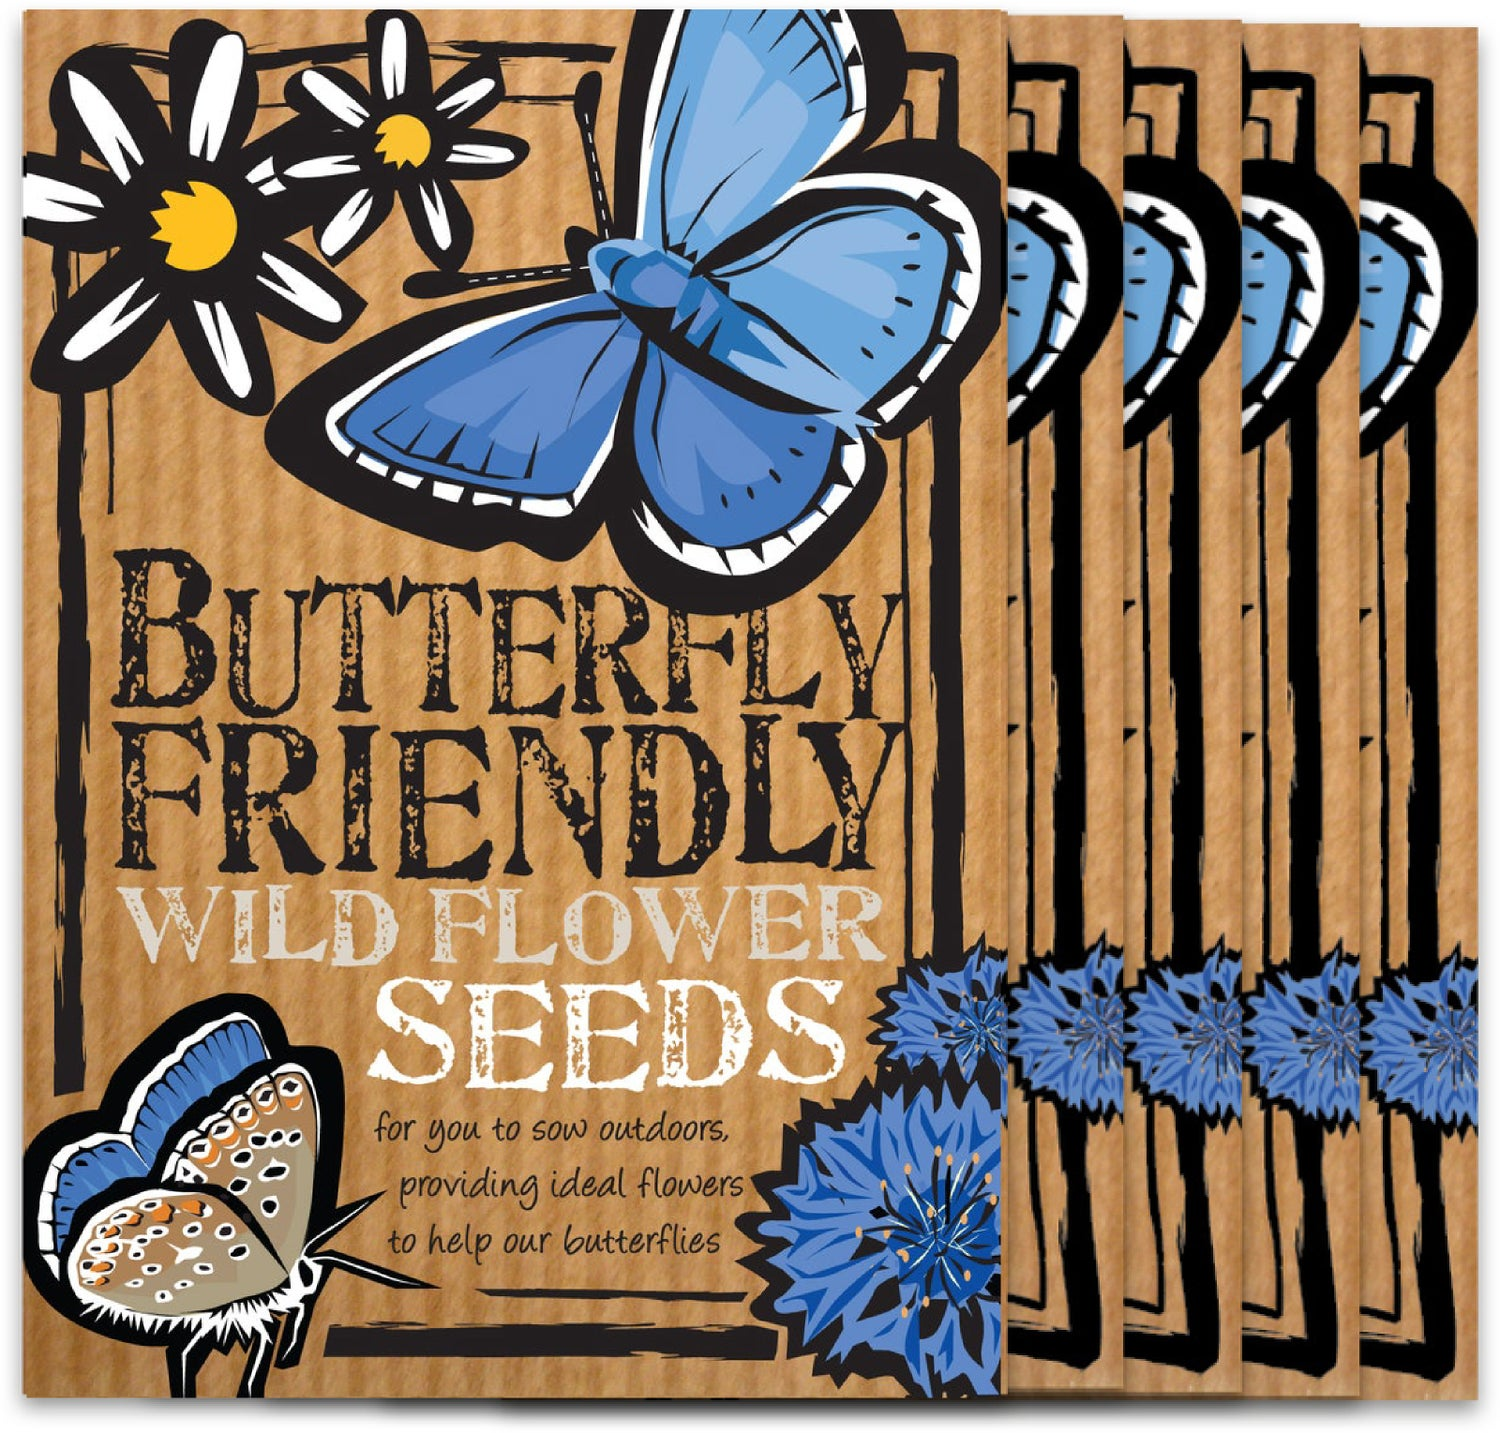 Image of Bumper 5 Pack of Butterfly Friendly Wild Flower Seeds (£12.96 including VAT)